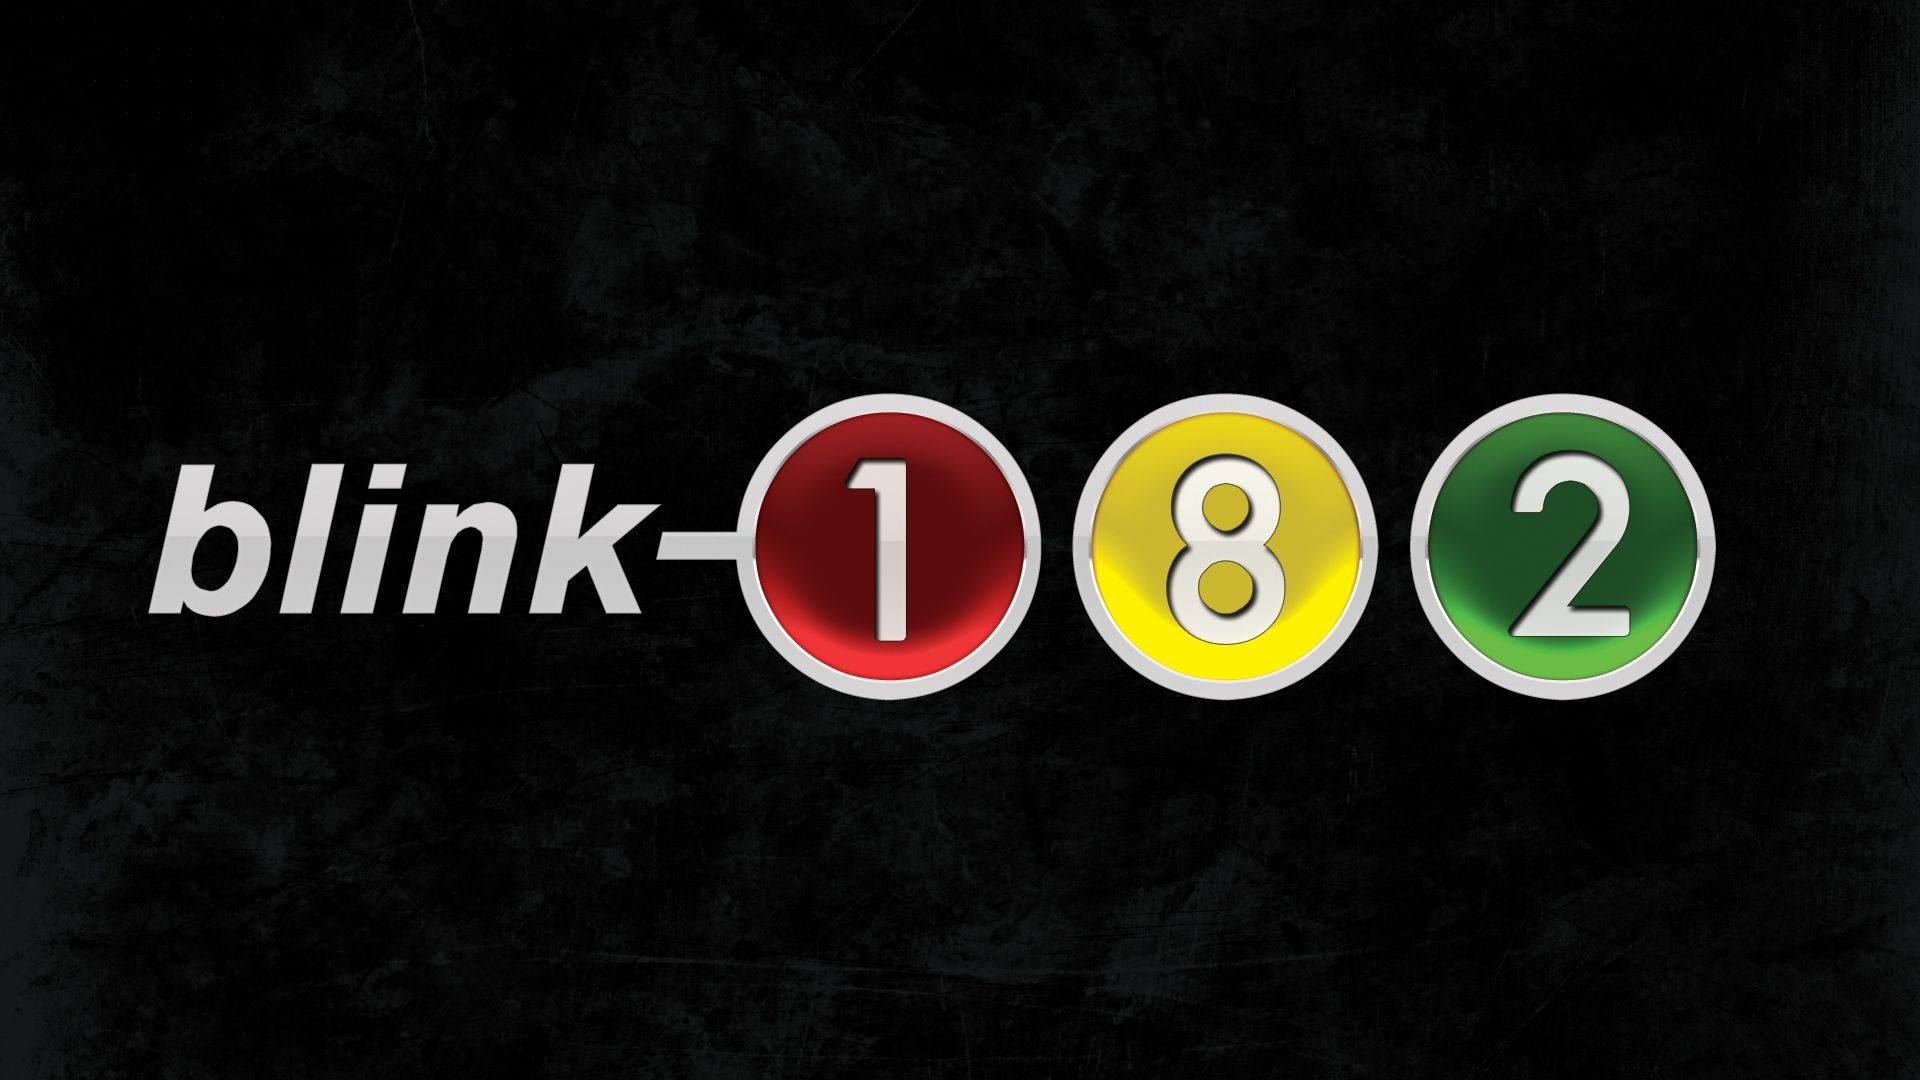 Blink-1080p-Background-http-and-backgrounds-net-blink-1080p-background-wallpaper-wp3603473